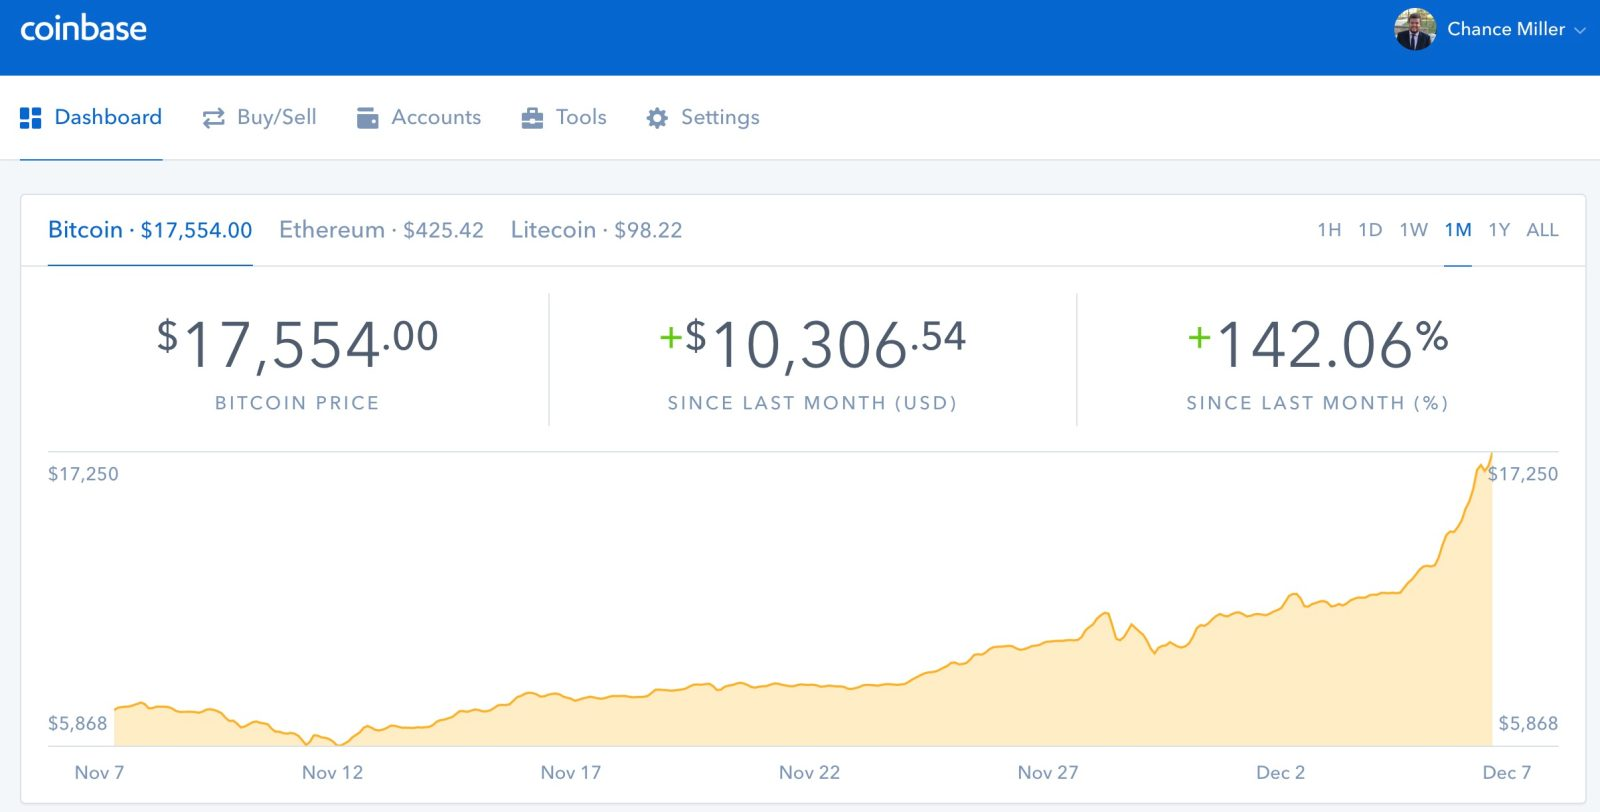 As Bitcoin continues to surge, Coinbase becomes the most downloaded